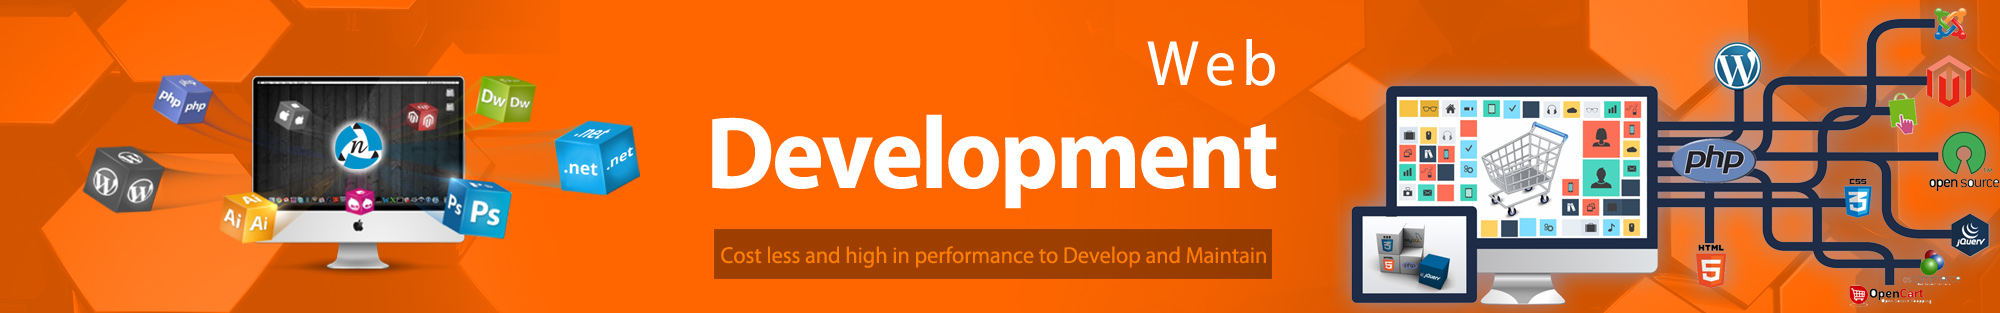 Website development in mumbai | Best Web development Company